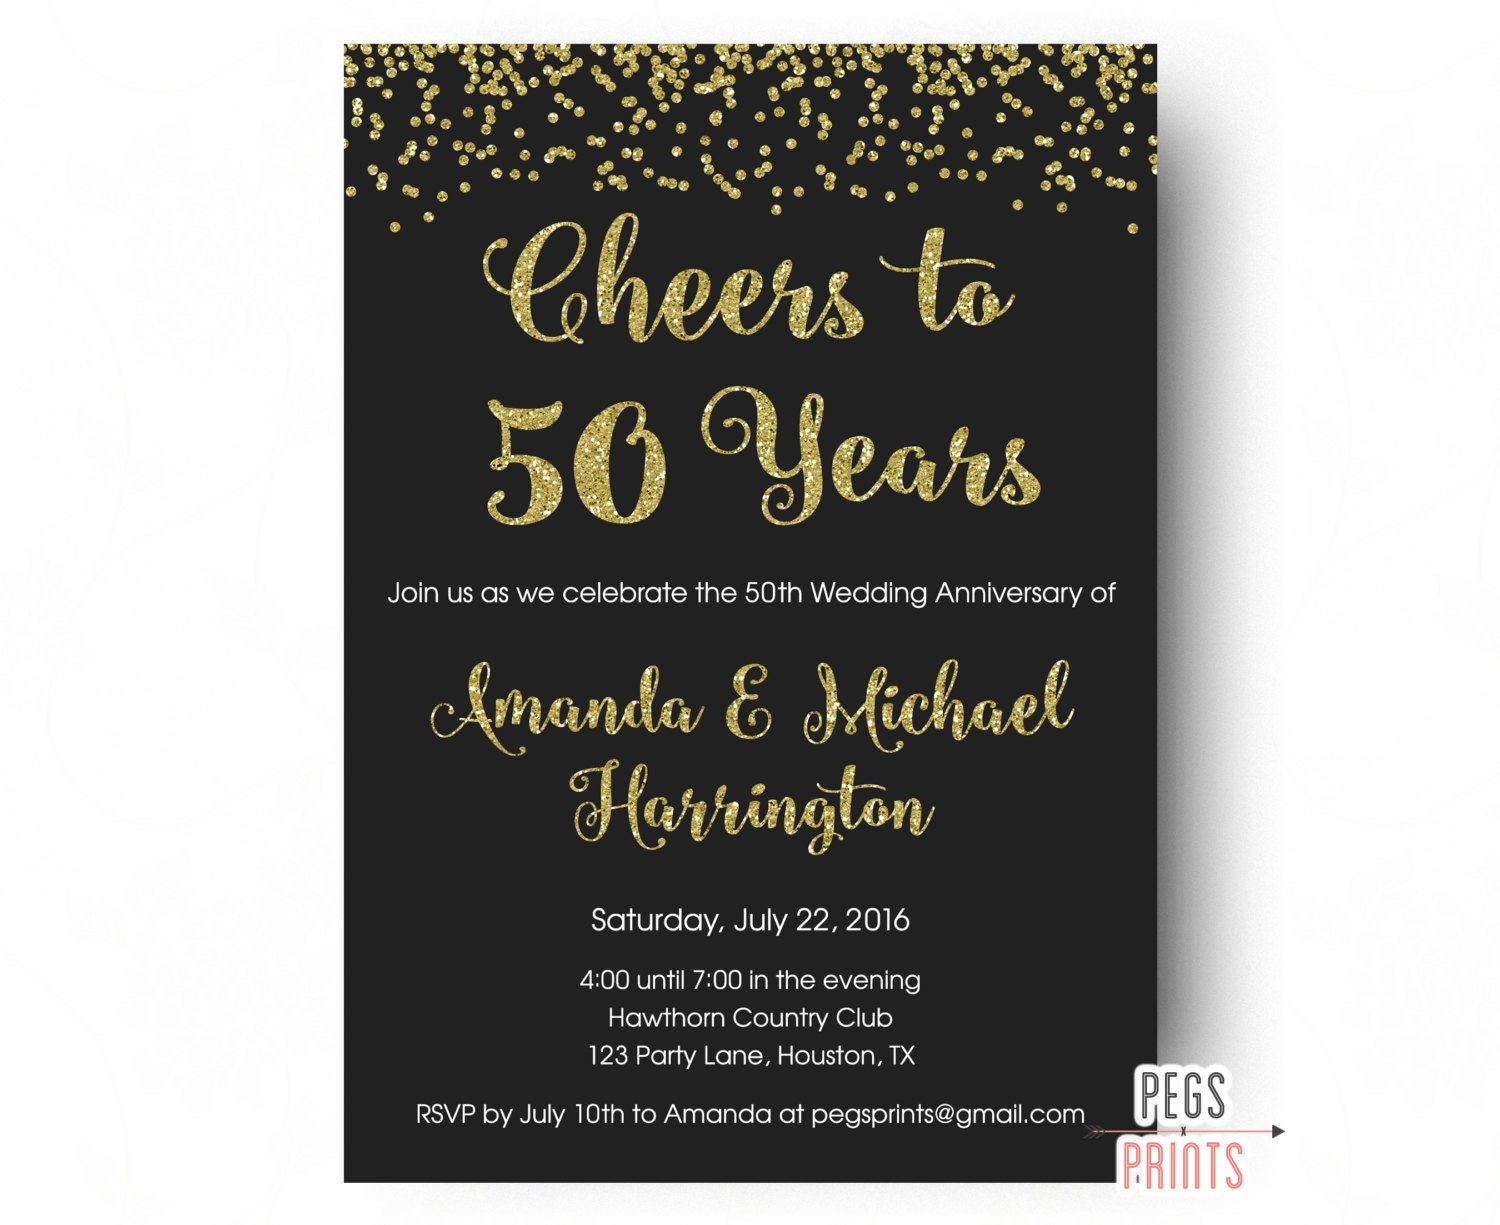 Cheers to 50 years invitation 50th anniversary invitation - Wedding anniversary invitations ...